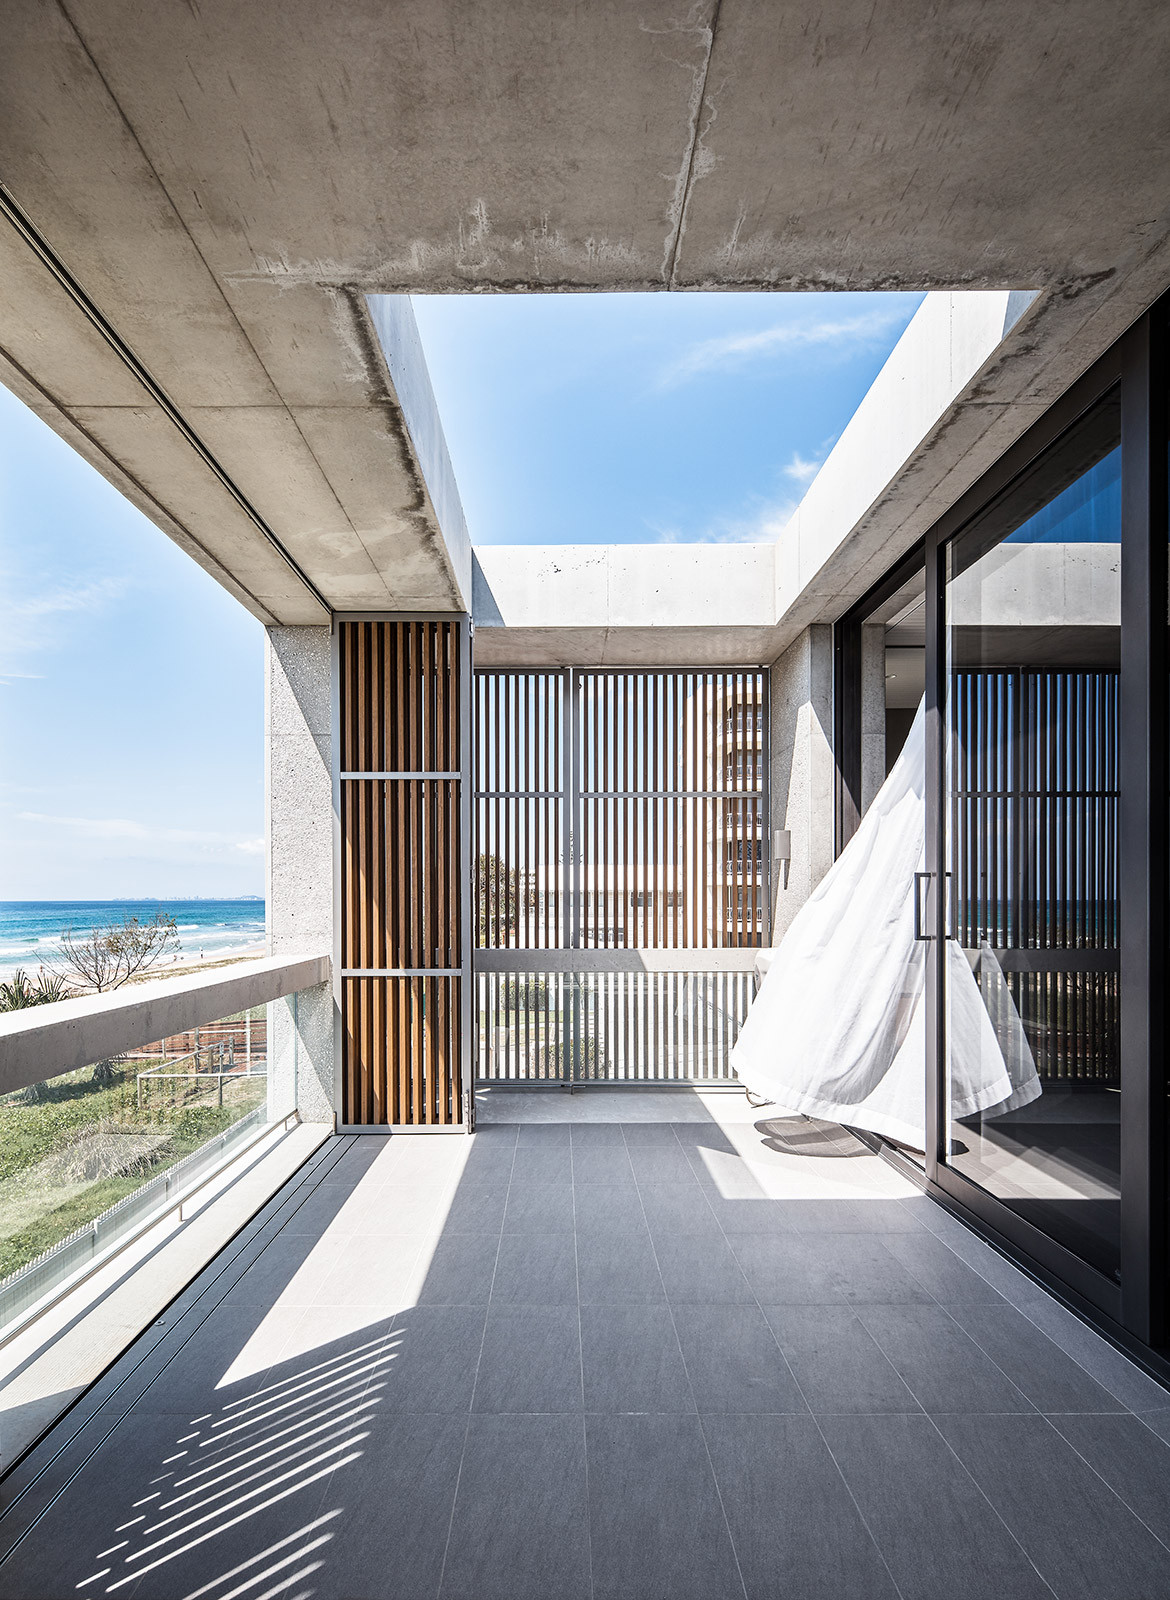 Mermaid Beach Residence B.E Architecture Queenslander Architecture CC Andy MacPherson balcony